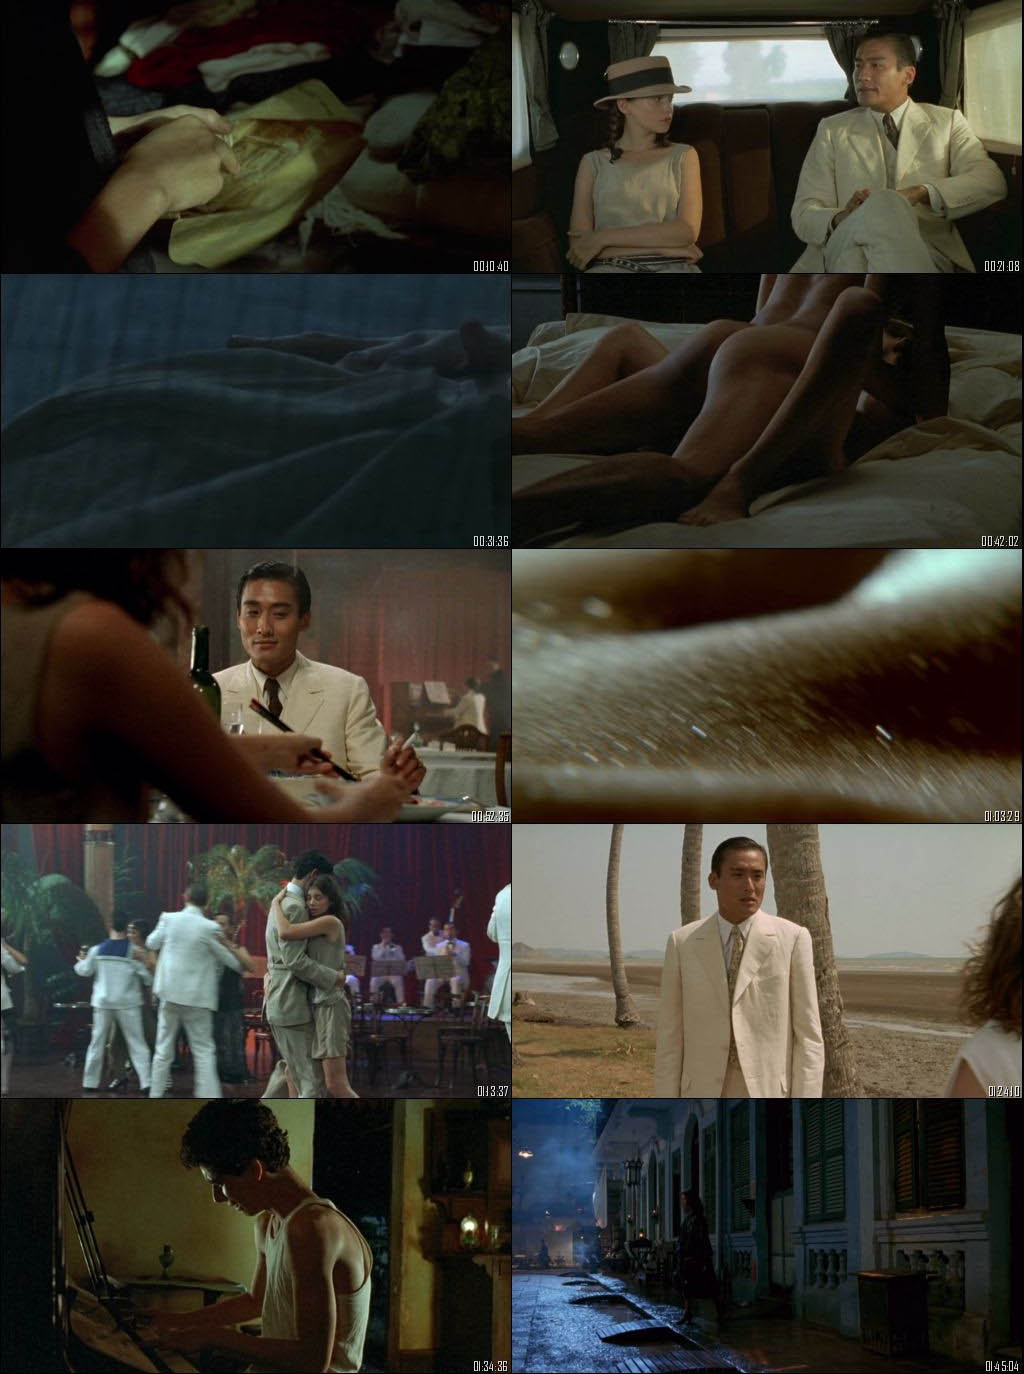 The Lover 1992 English Adult 18+ Movie Download HD at movies500.site